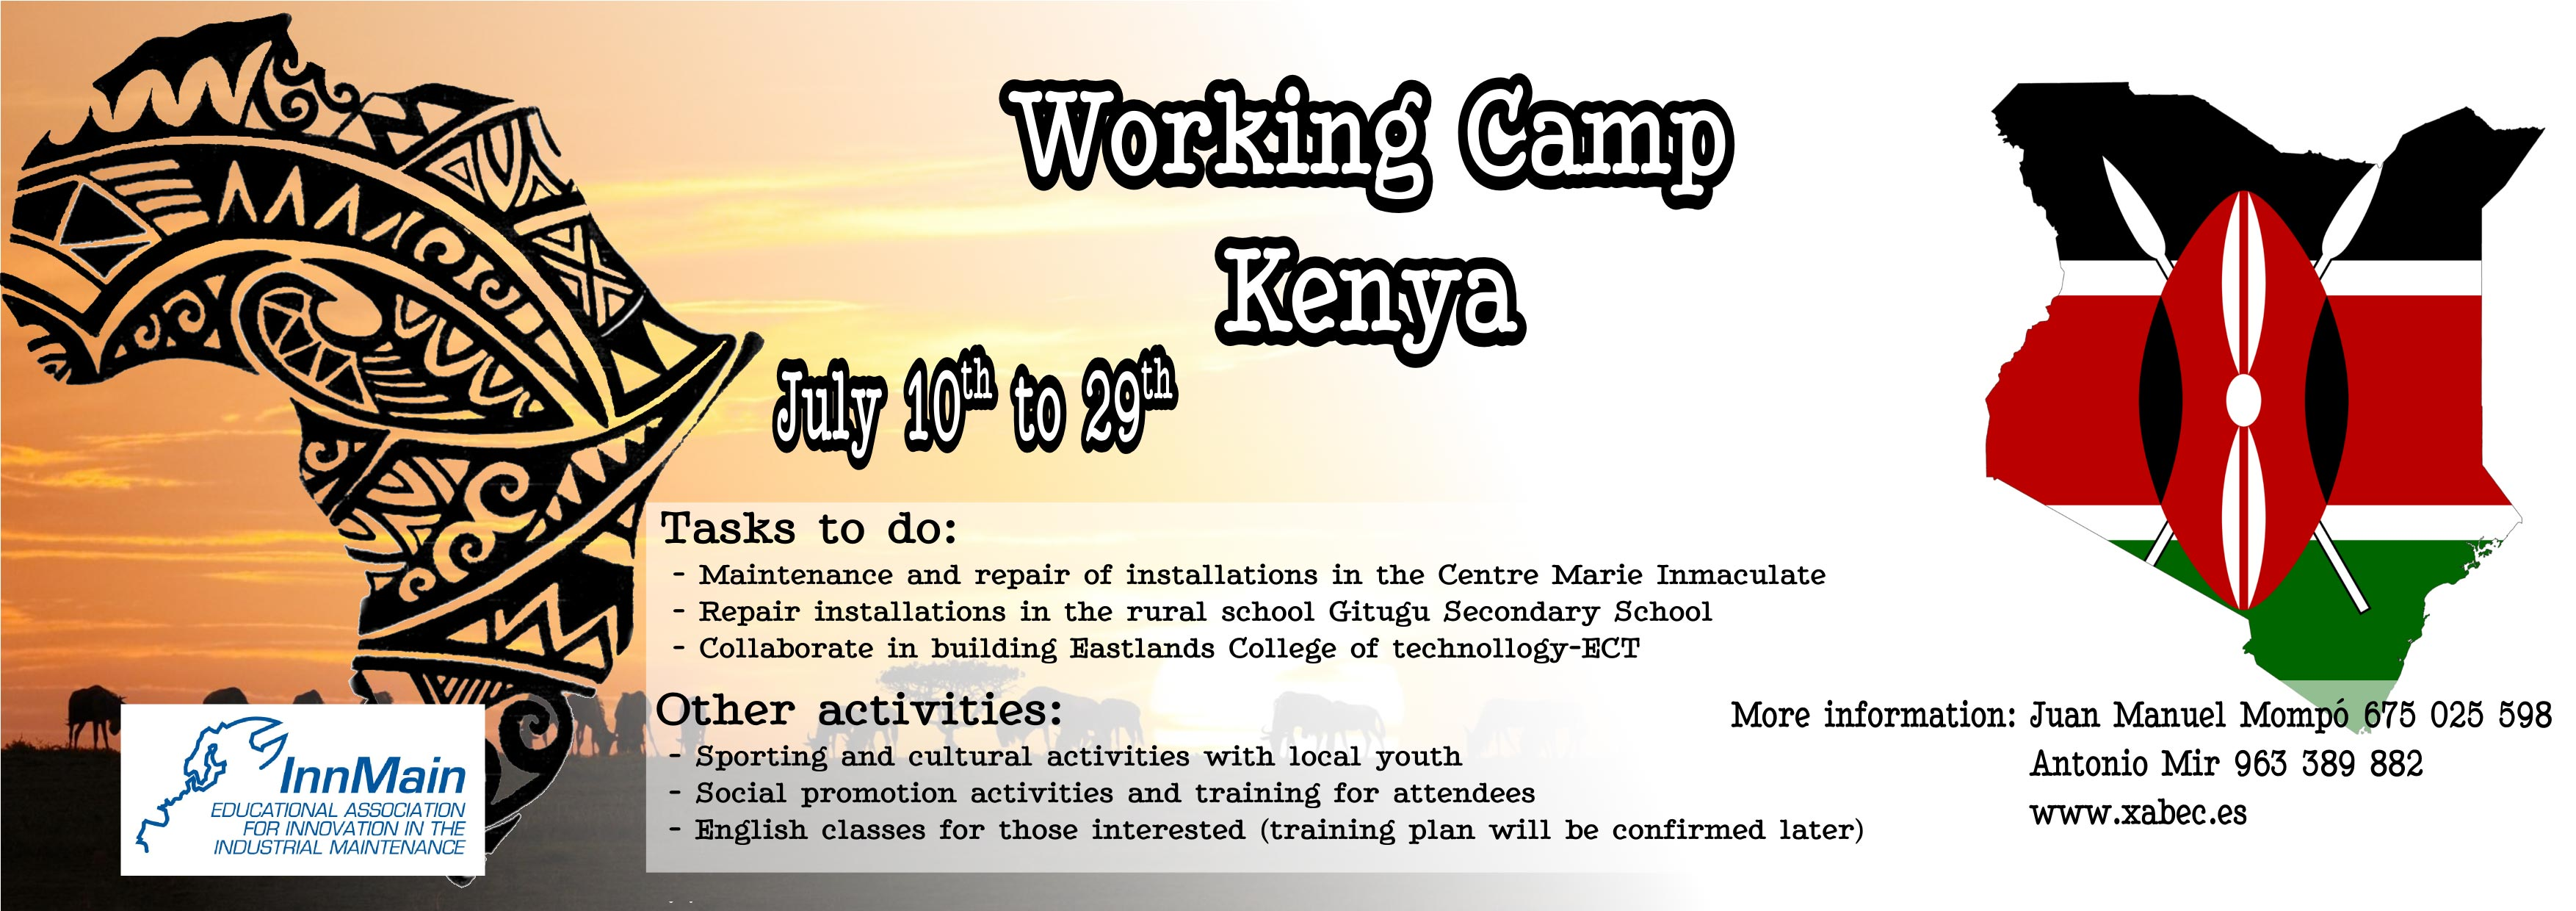 International Work Camp in Kenya